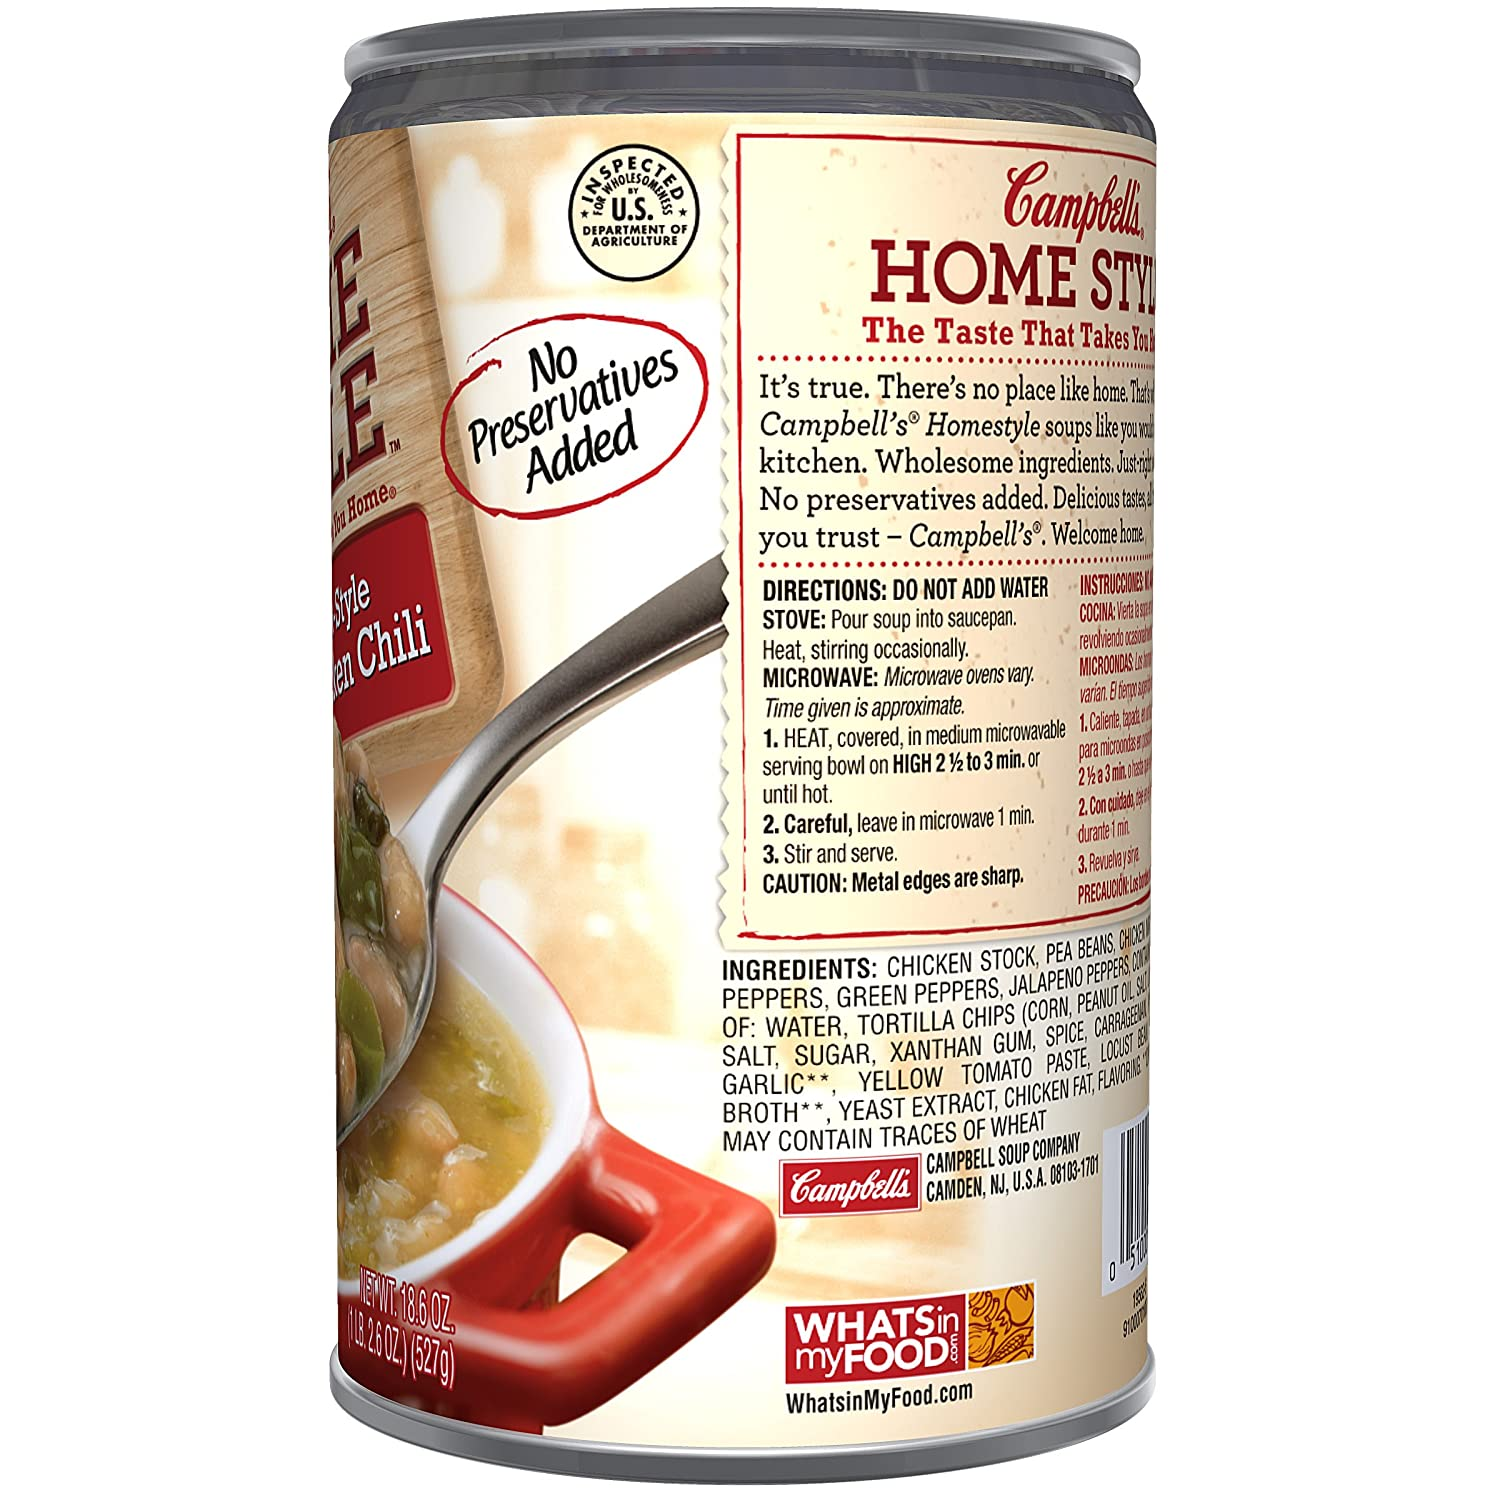 Amazon.com : Campbells Homestyle Soup, Southwest-Style White Chicken Chili, 18.6 Ounce (Pack of 12) : Packaged Chicken Soups : Grocery & Gourmet Food